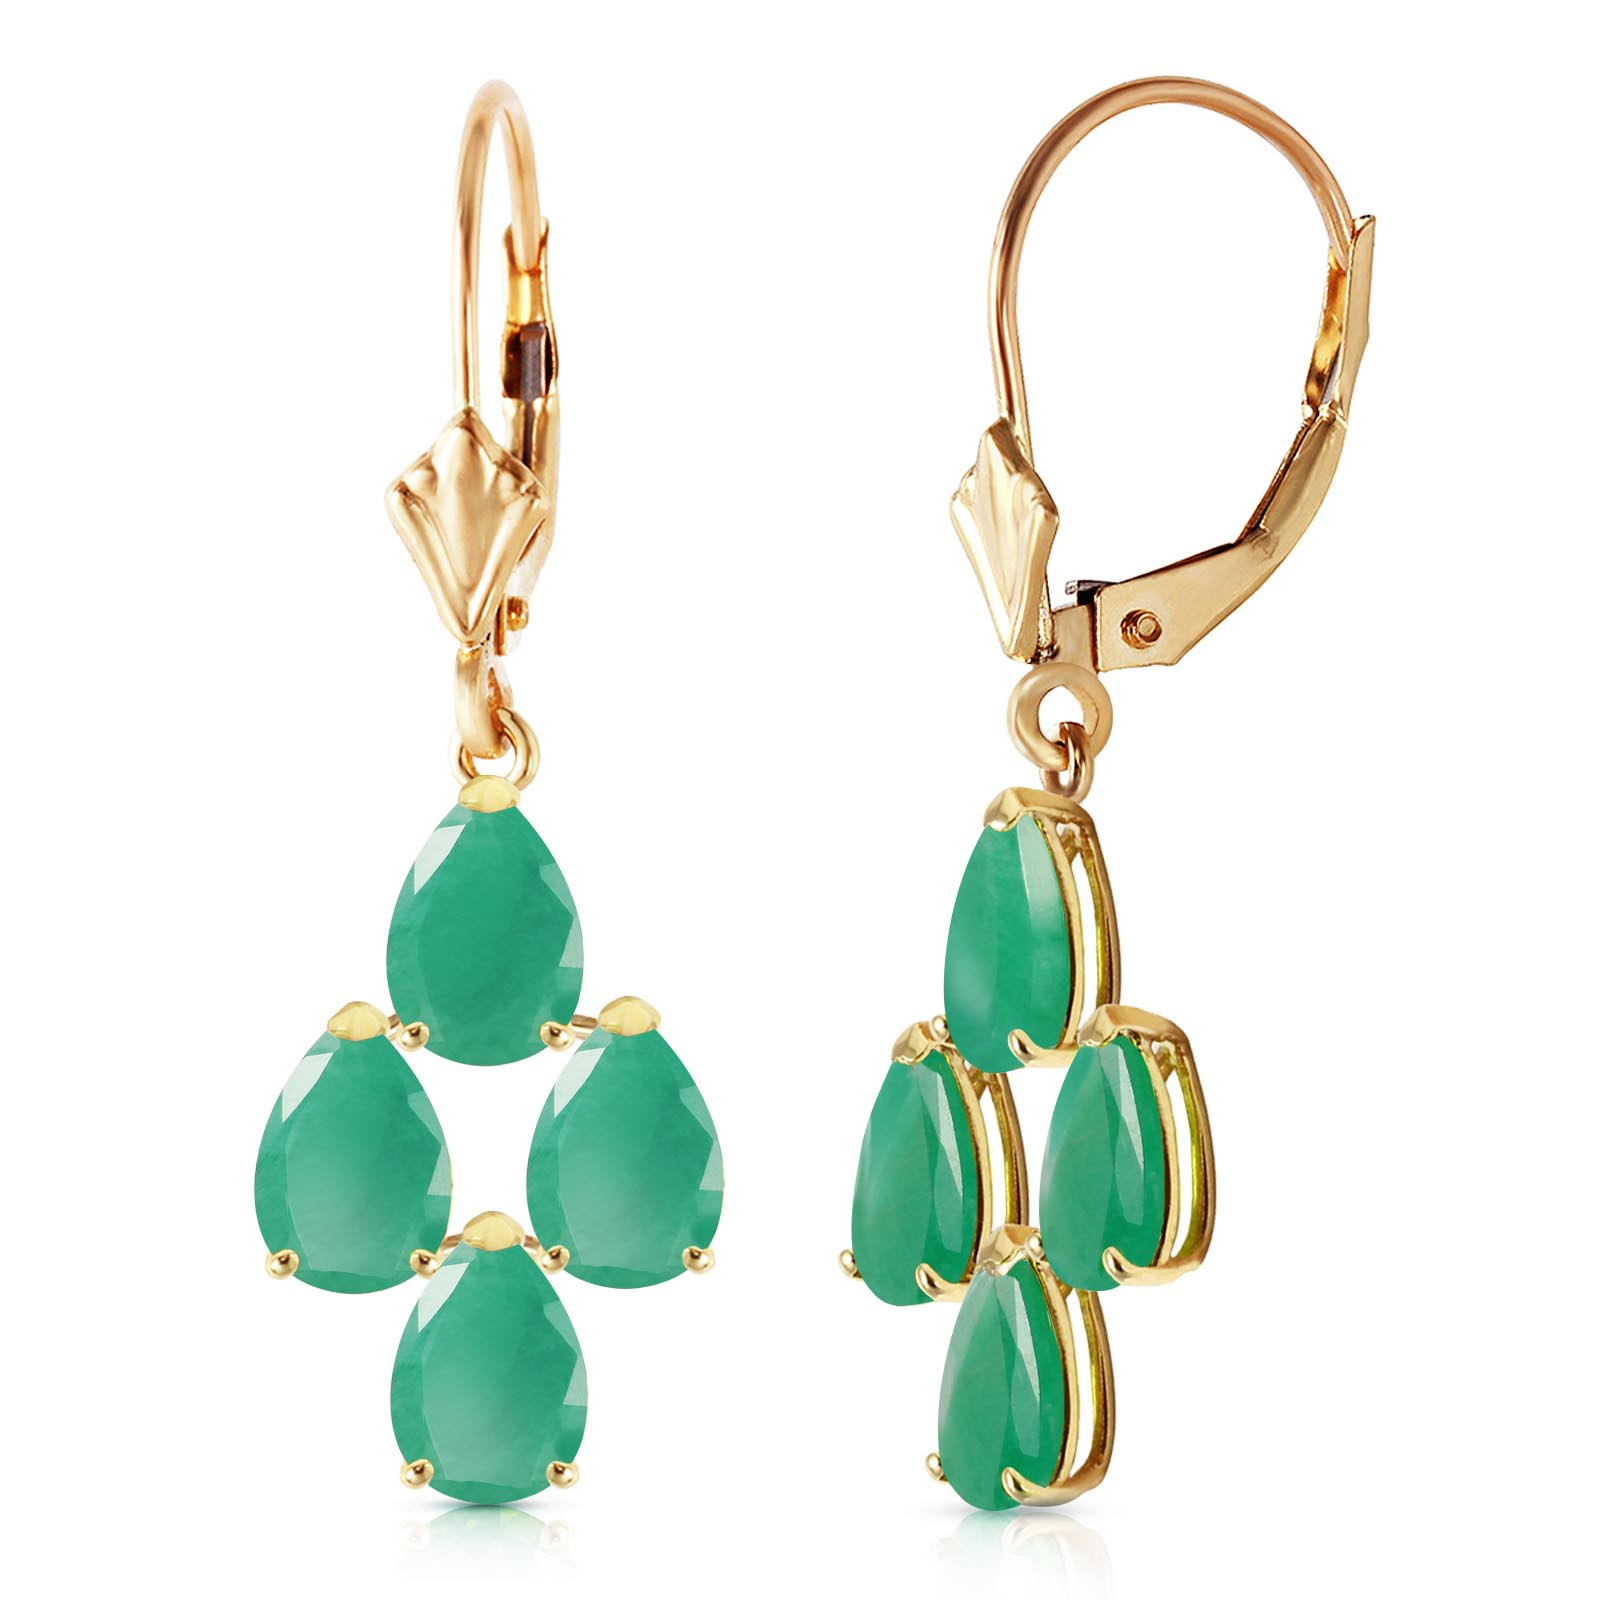 Emerald Drop Earrings 4.5 ctw in 9ct Gold